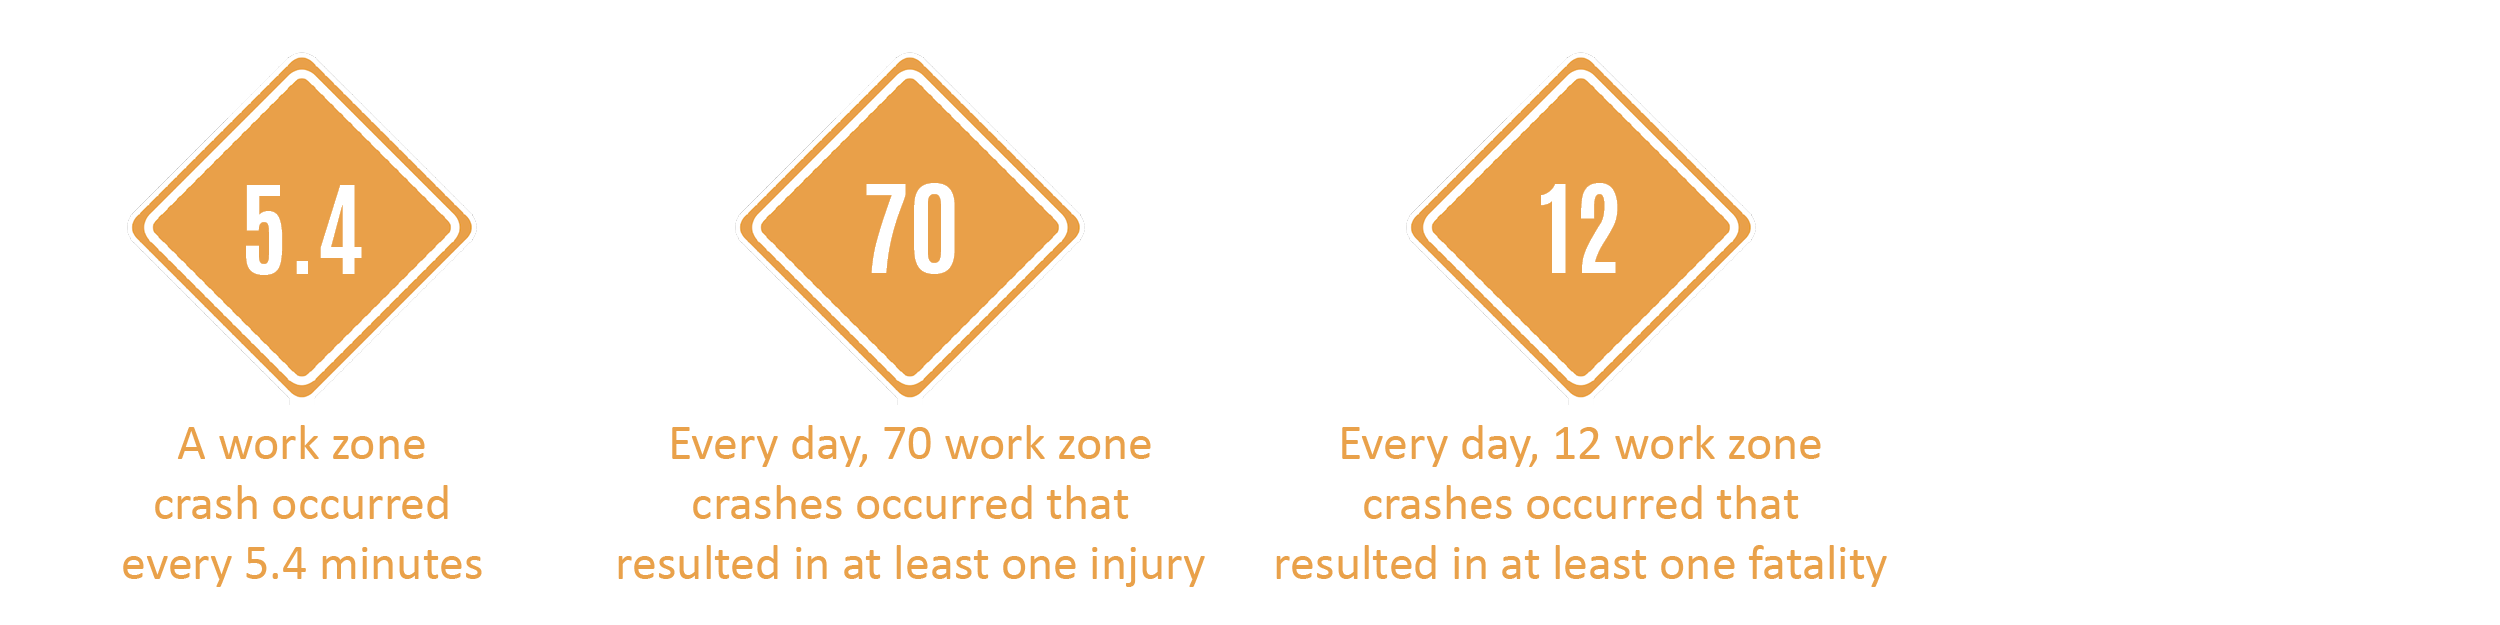 National Work Zone Awareness 2015 Stats